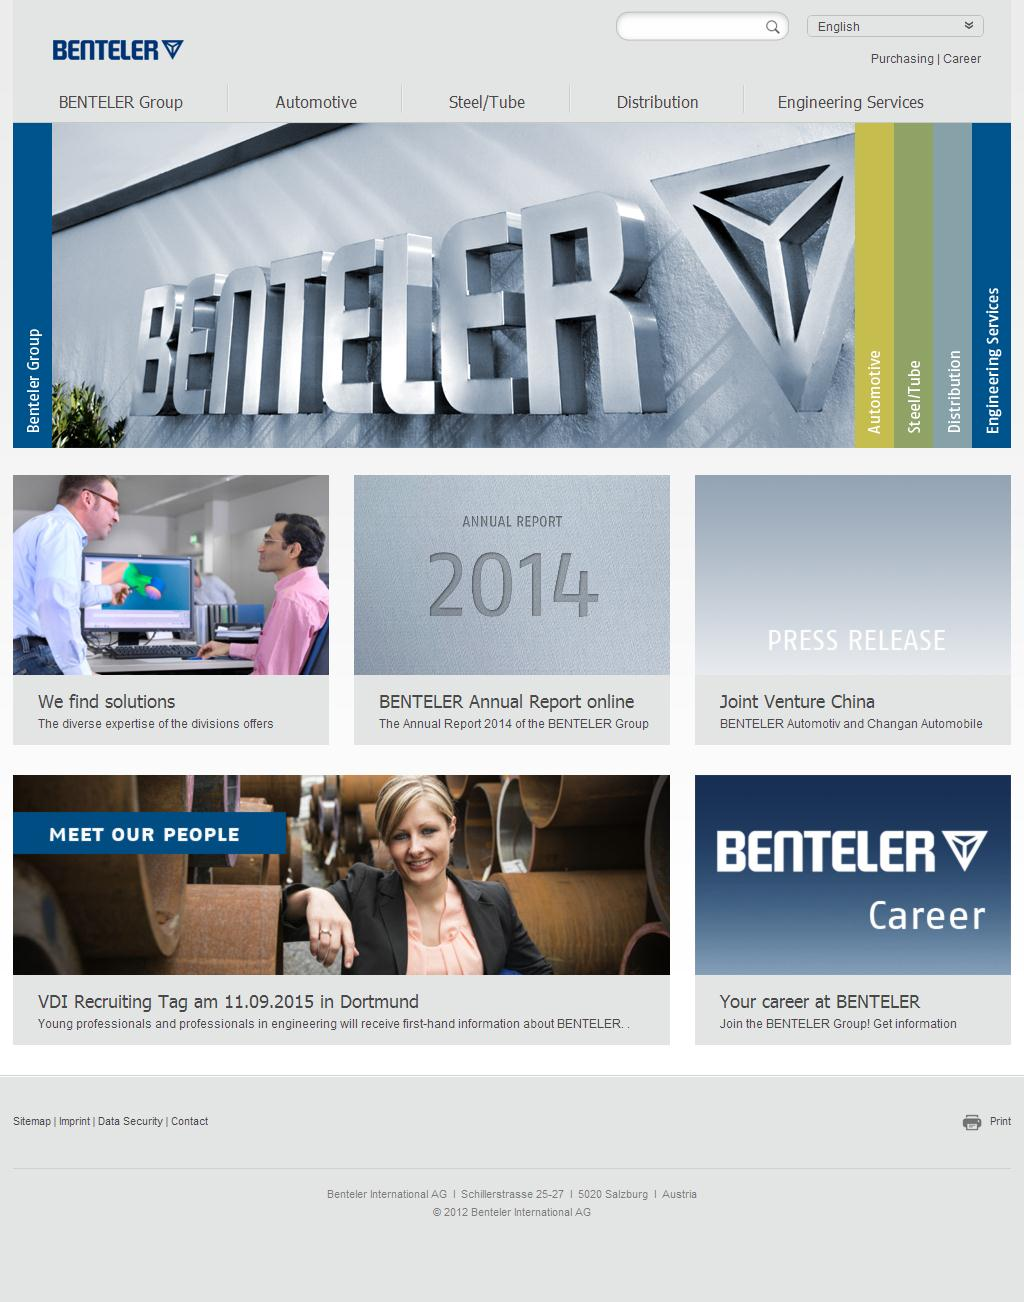 Benteler International AG: Home - Benteler International AG